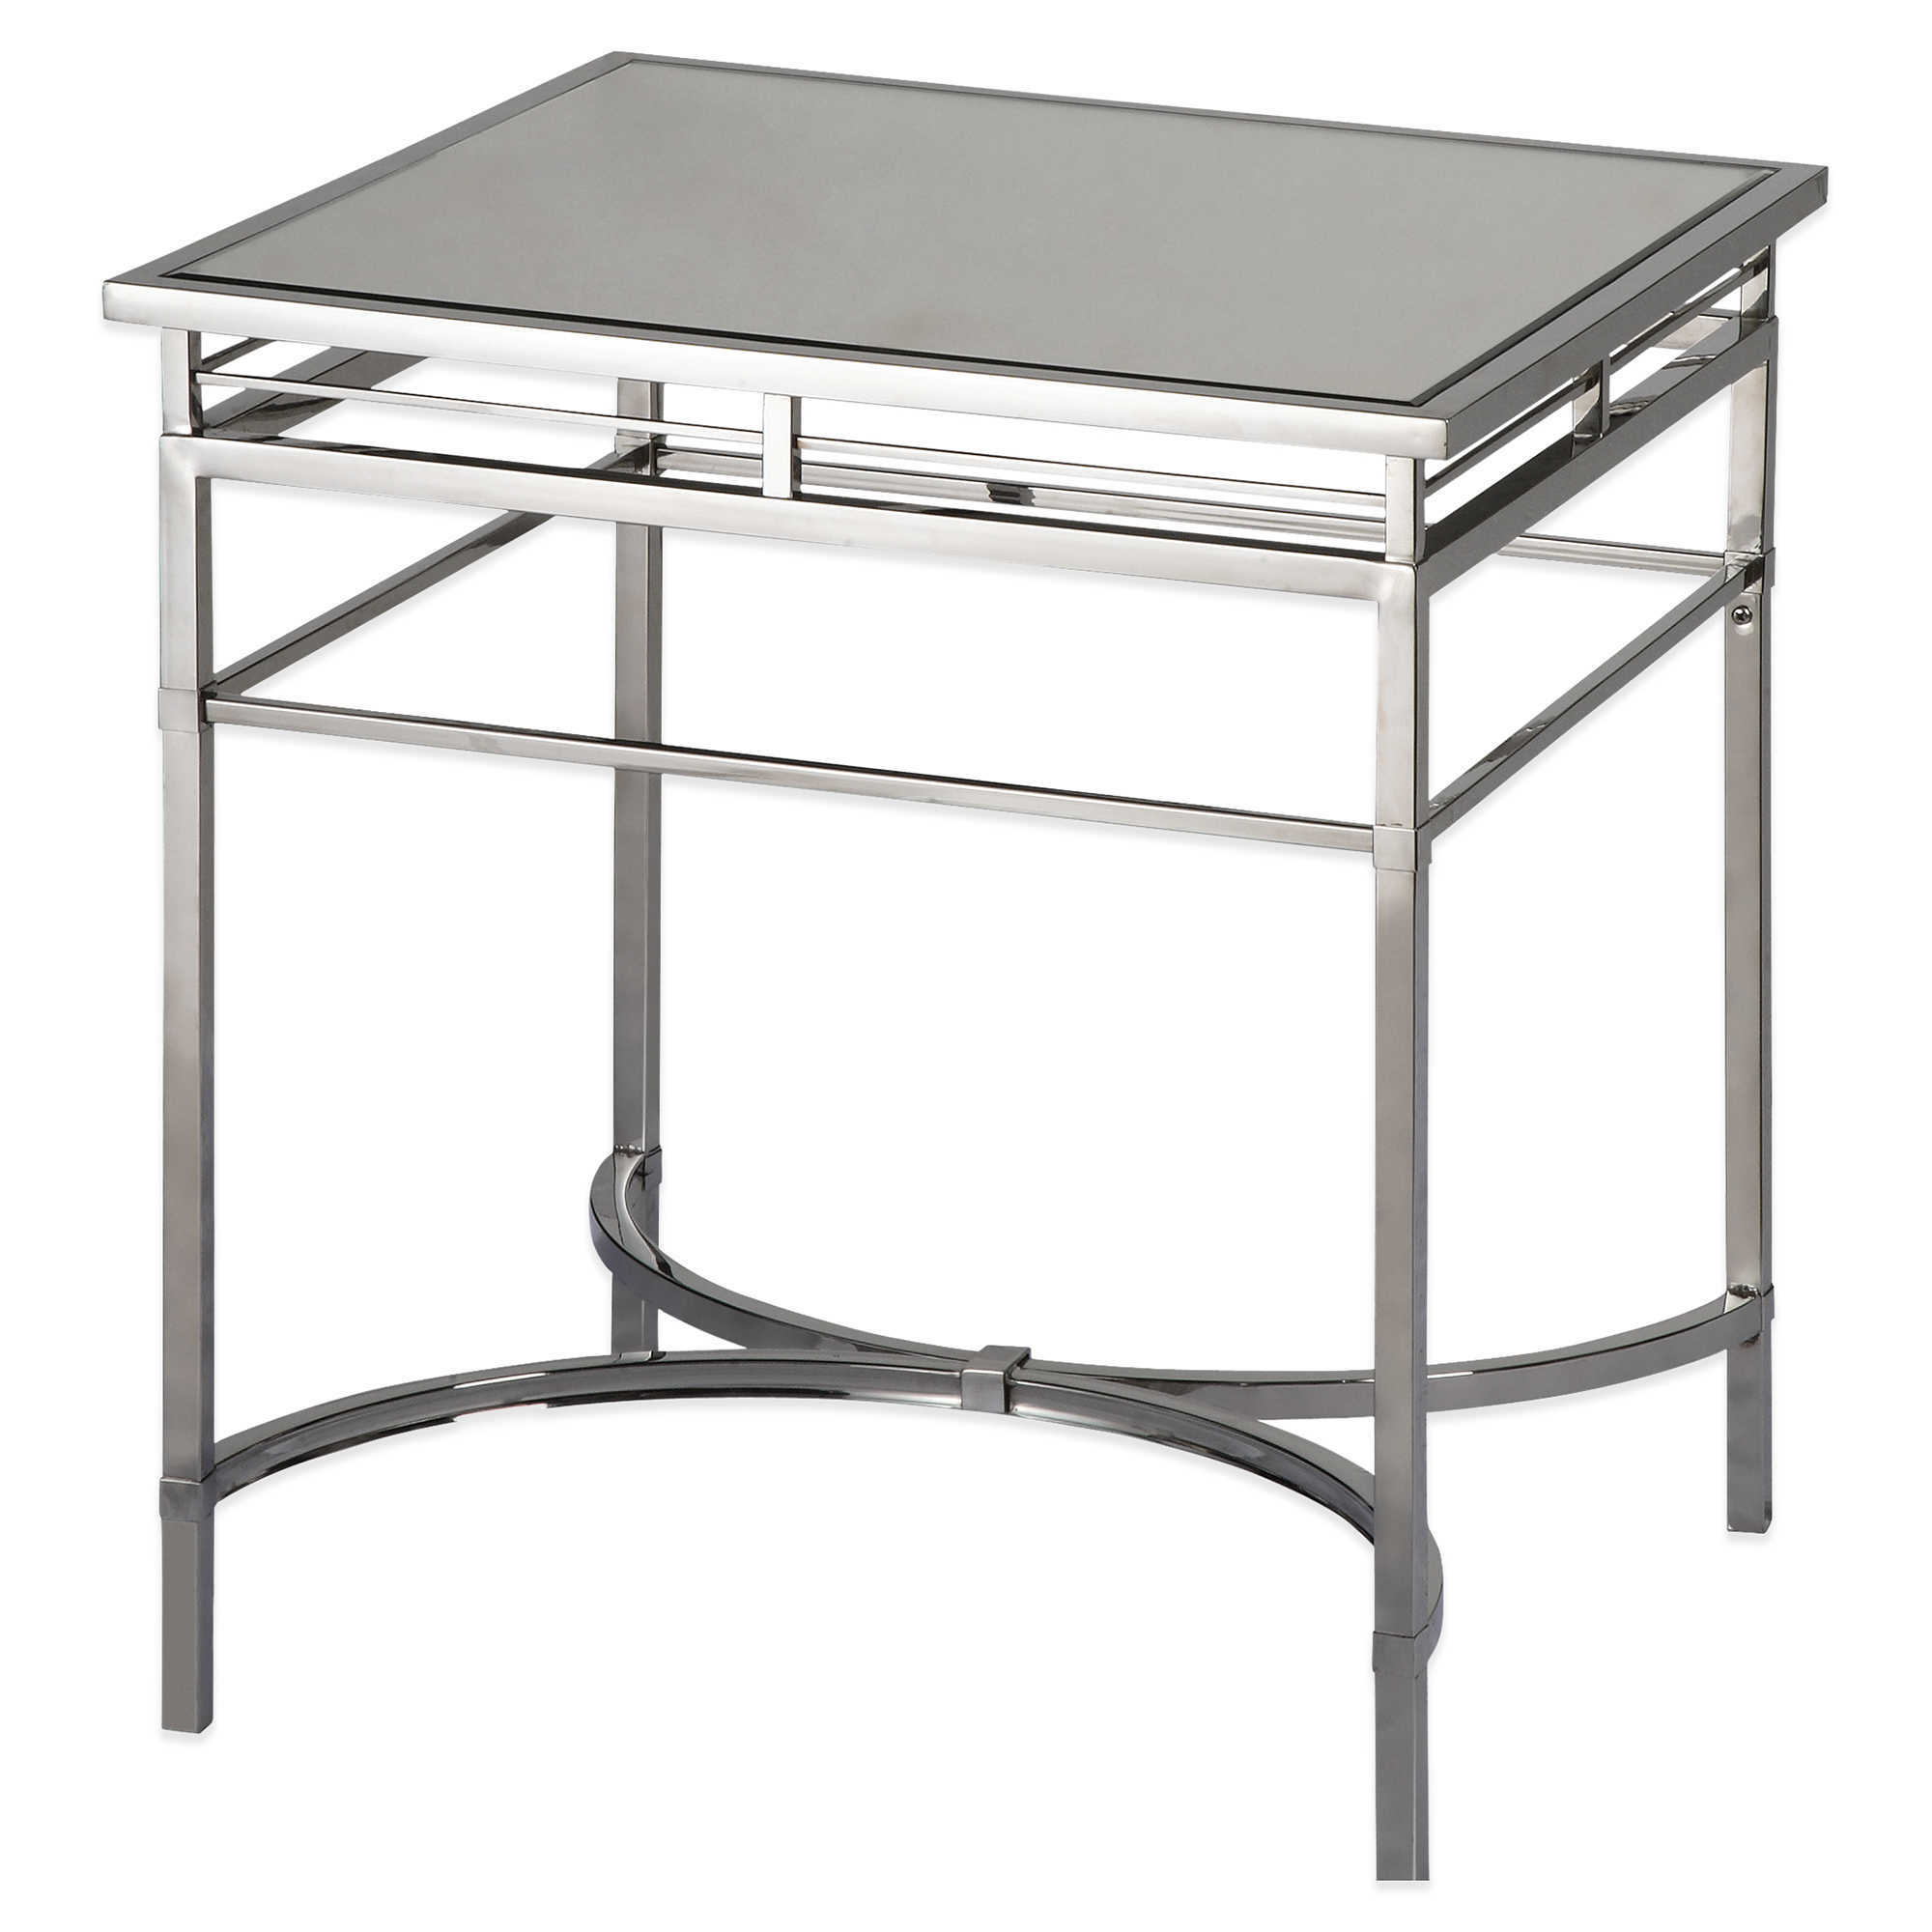 Picture of: China San Francisco Stainless Steel With Glass Top Side Table Small Coffee Table China Glass Coffee Table Simple Design Coffee Table